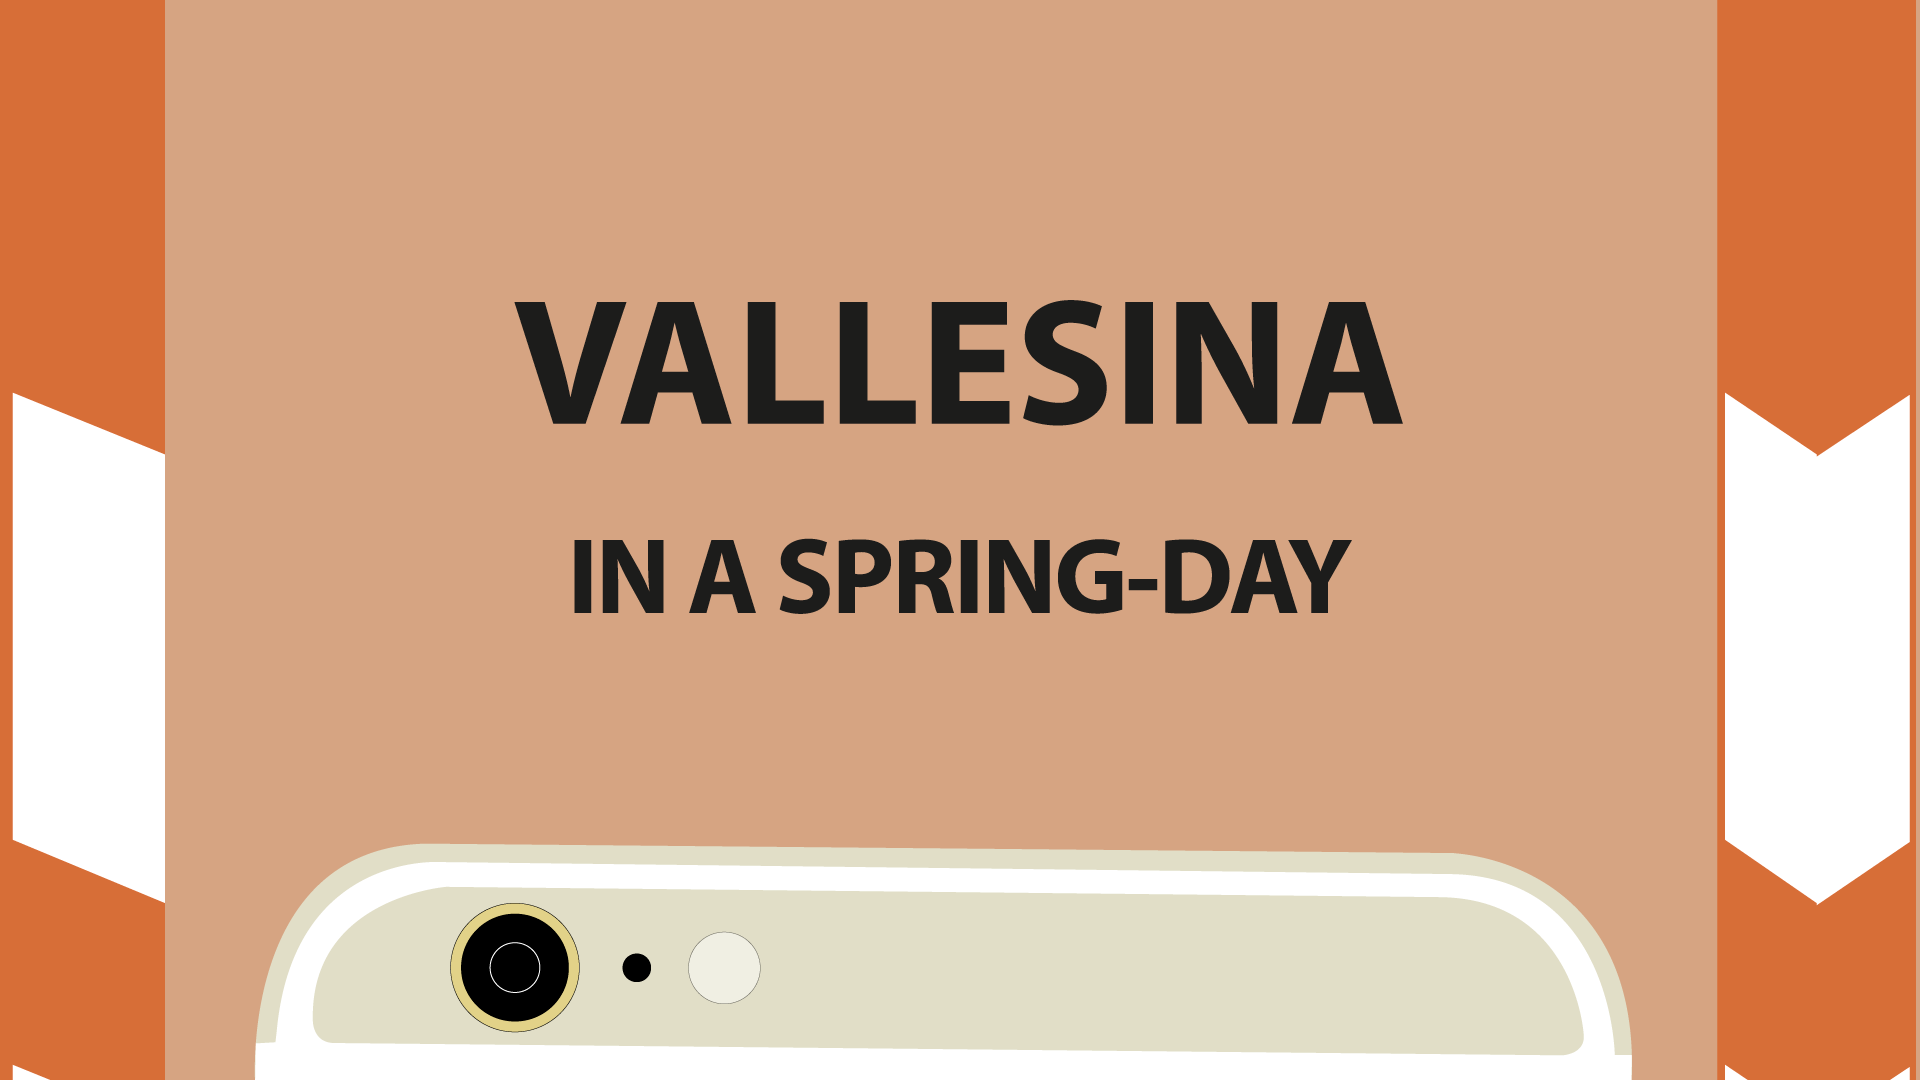 vallesina-in-a-spring-day-header